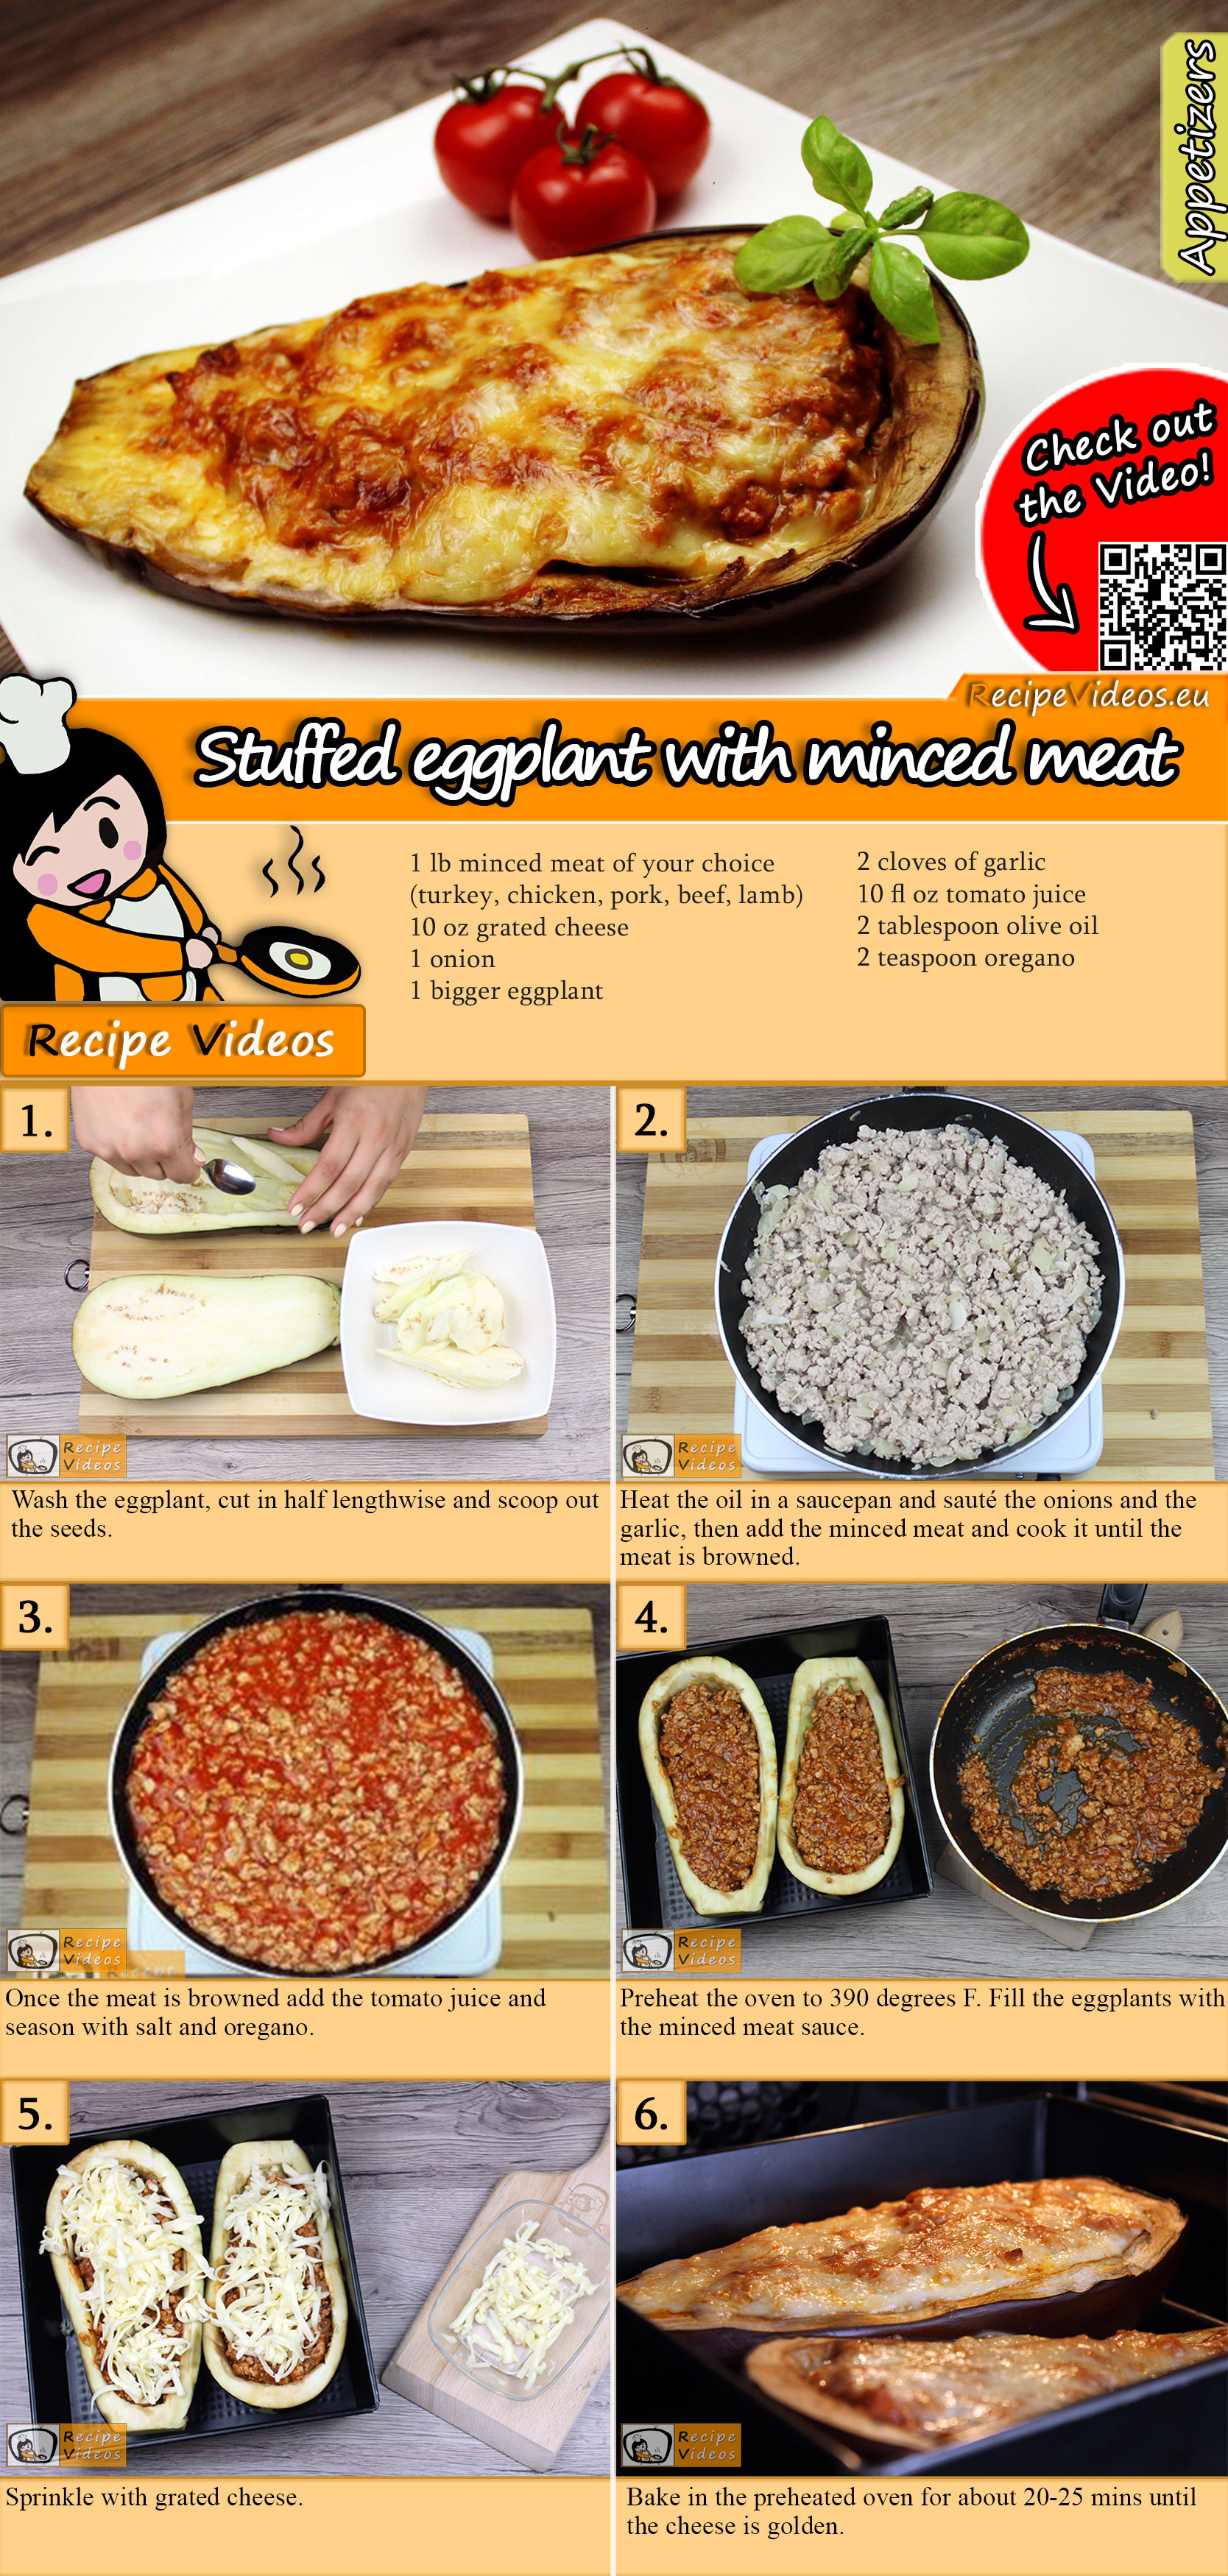 Stuffed eggplant with minced meat recipe with video